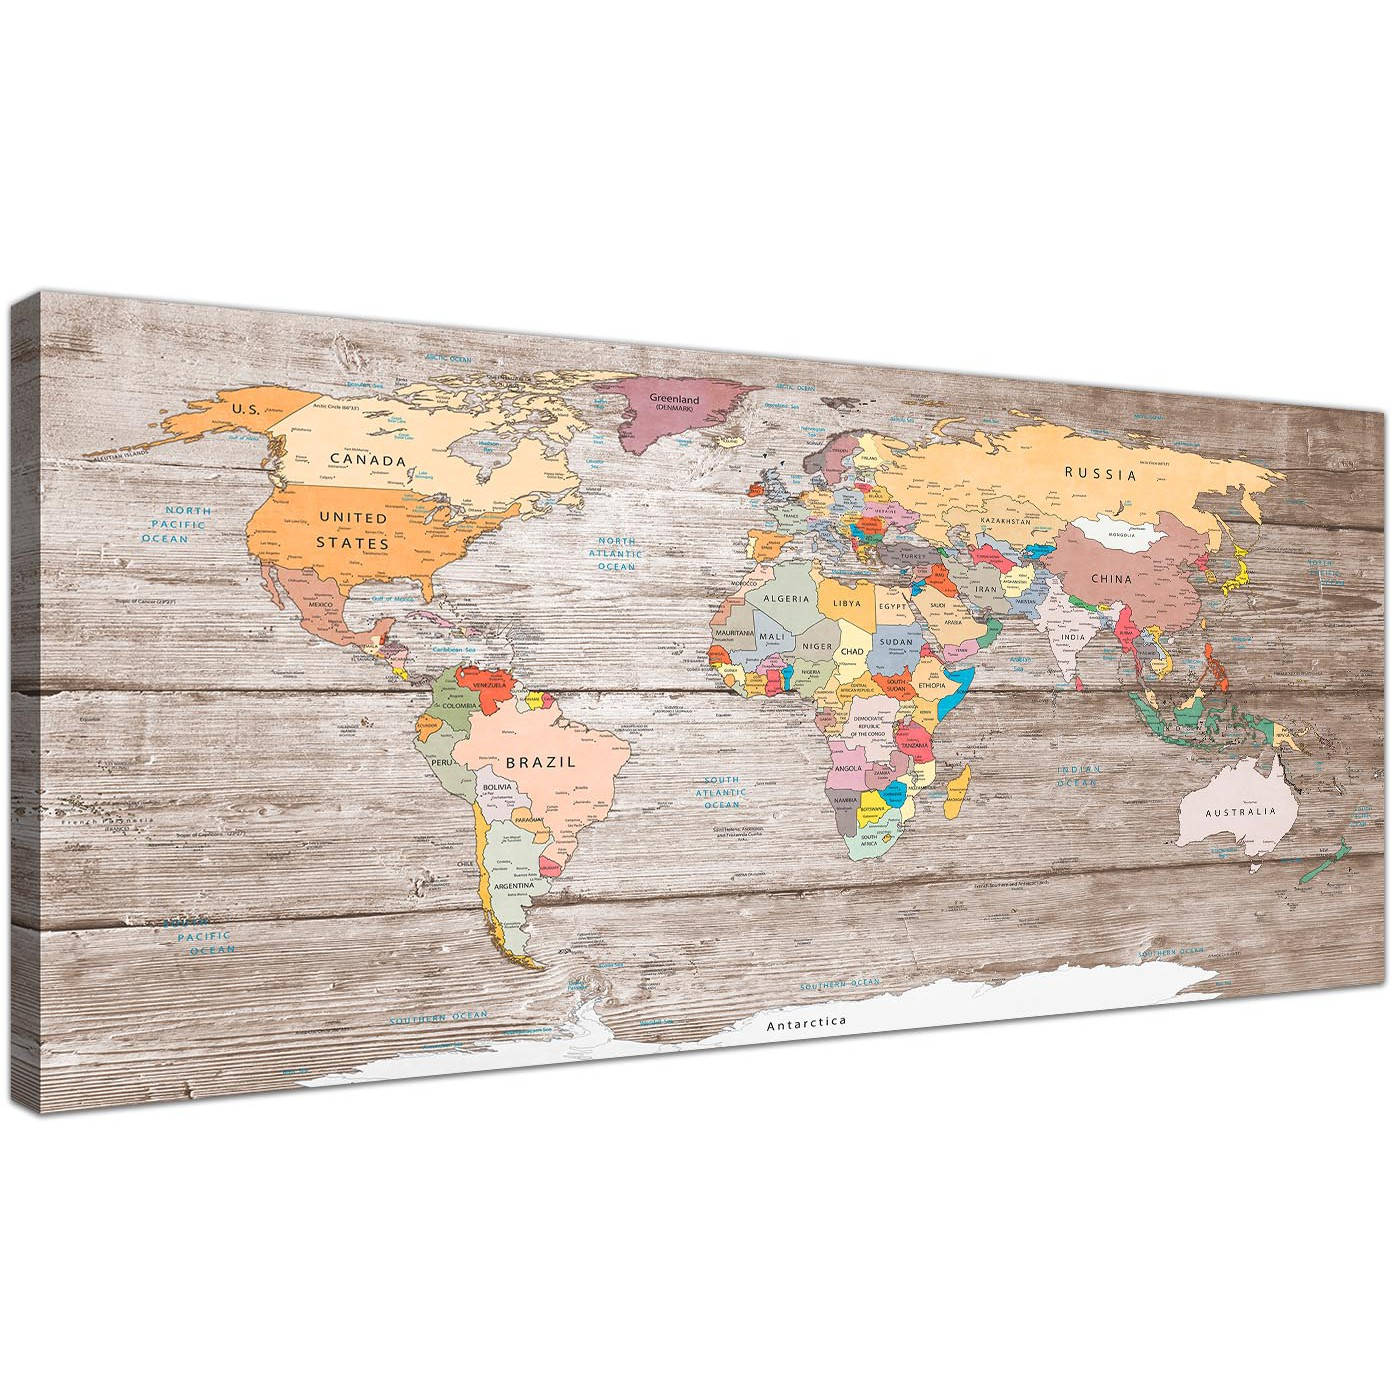 Large decorative map of world atlas canvas wall art print modern oversized large decorative map of the world atlas canvas modern 120cm wide 1326 for your kitchen display gallery item 1 gumiabroncs Gallery